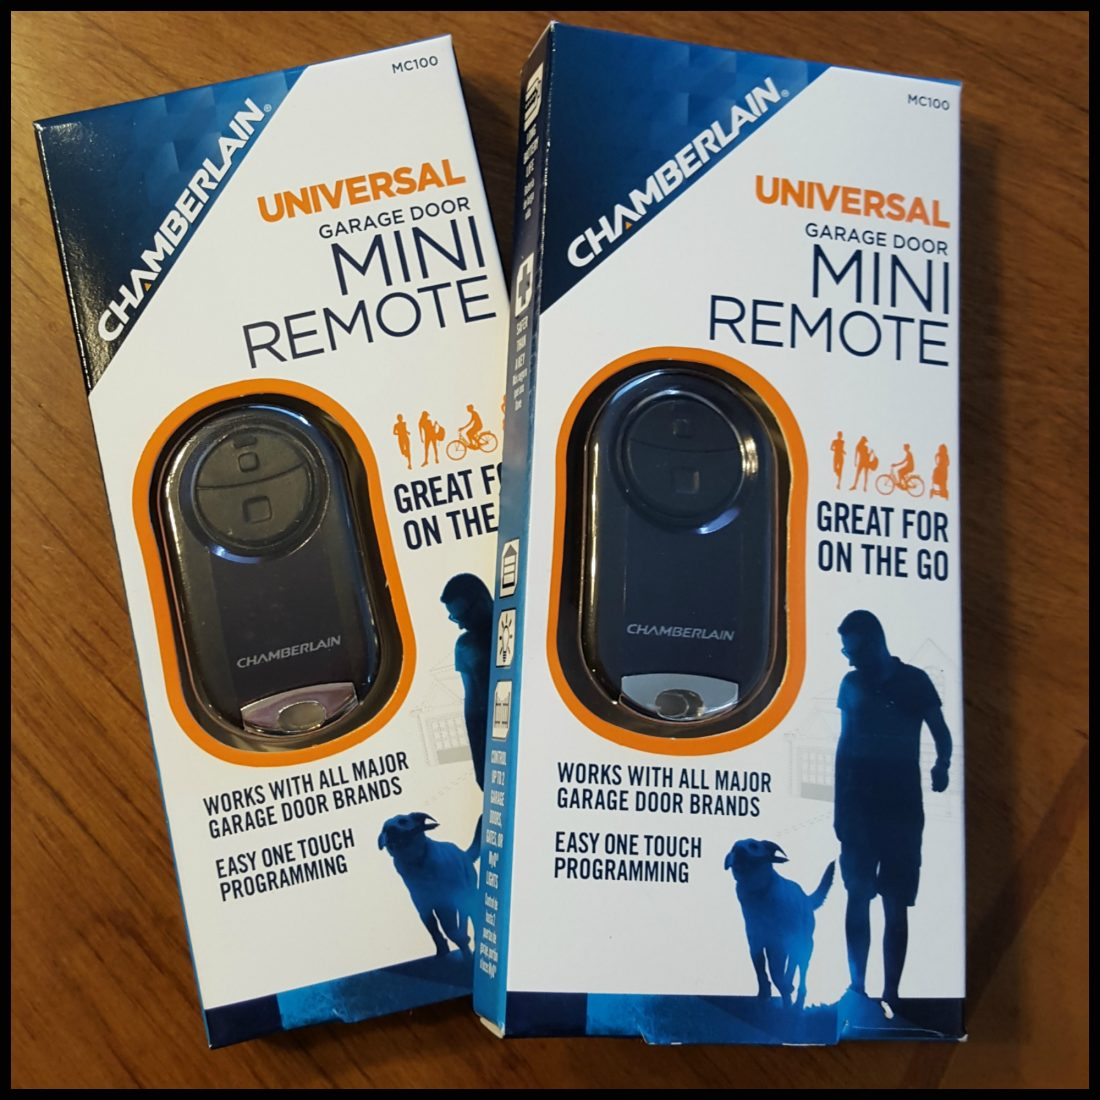 Chamberlain sent me 2 mini remotes to try out. miniremote3. \u201c  sc 1 st  Bragging Mommy & Brag Worthy Christmas Chamberlain Universal Mini Garage Door ...